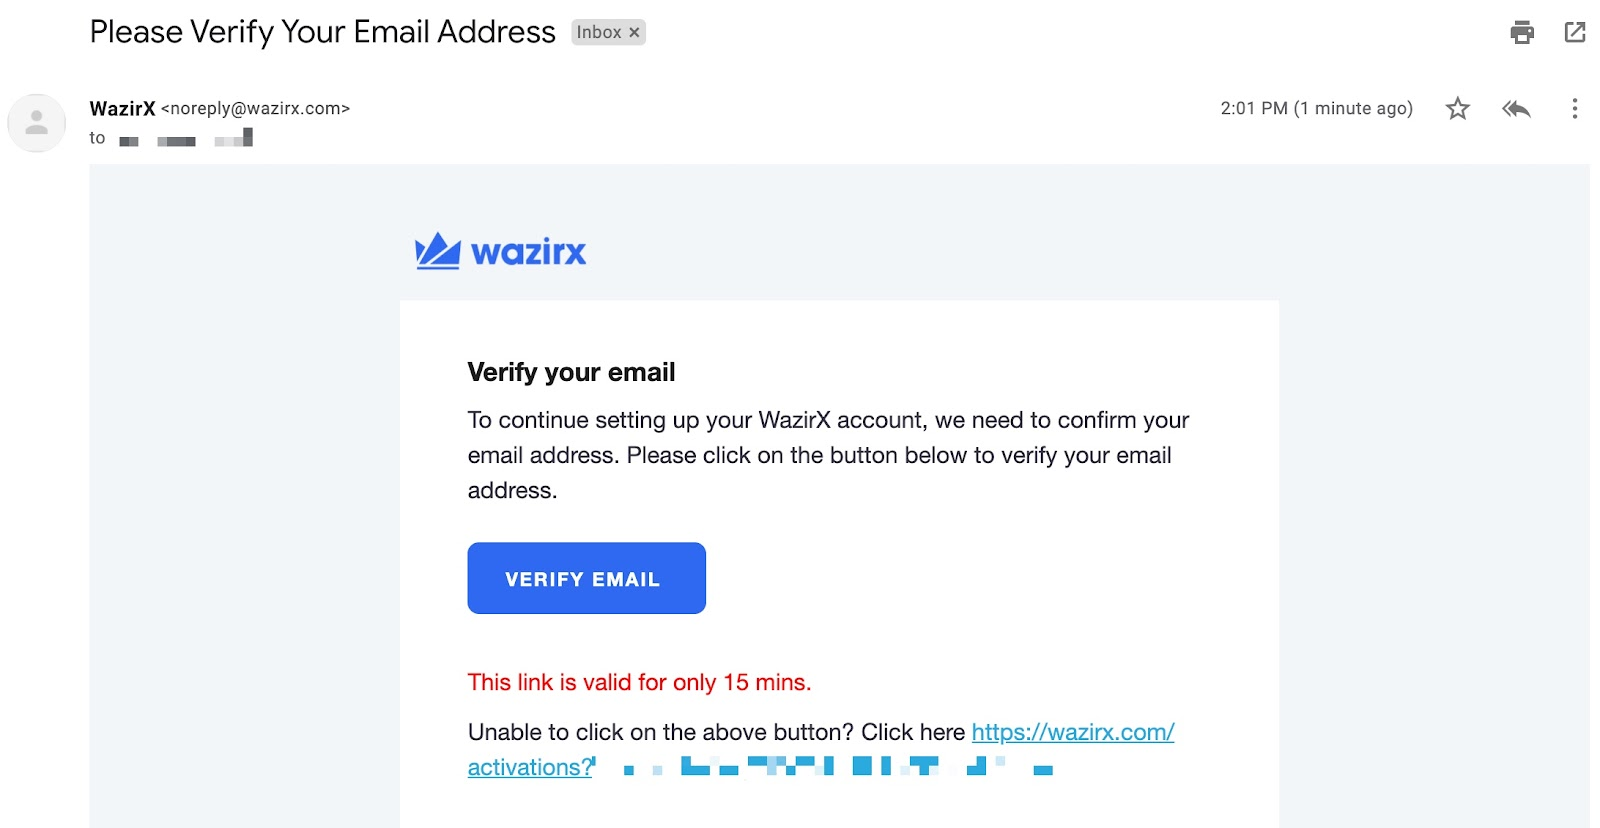 verifying email address page